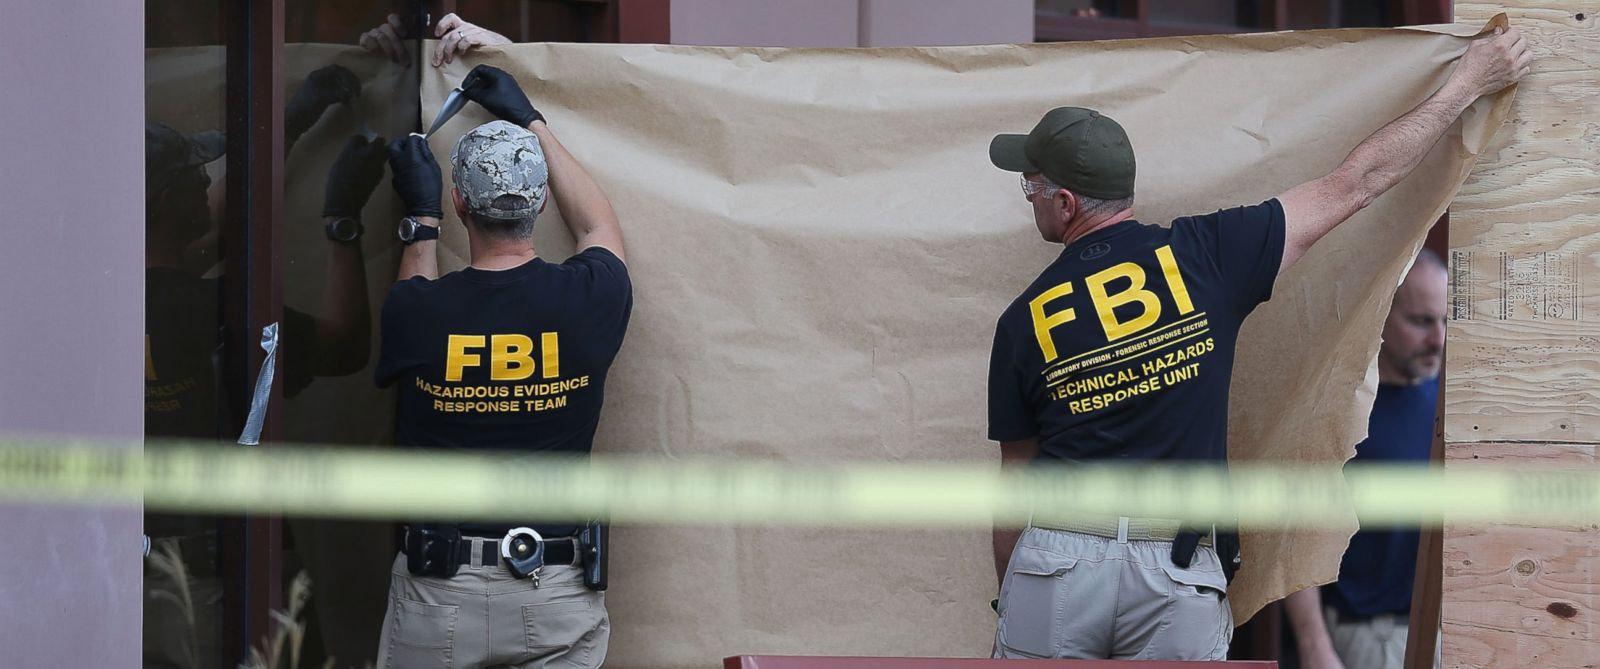 PHOTO: FBI agents put up a screen to block the view of onlookers as they investigate the building at the Inland Regional Center were 14 people were killed, Dec. 7, 2015 in San Bernardino, Calif.